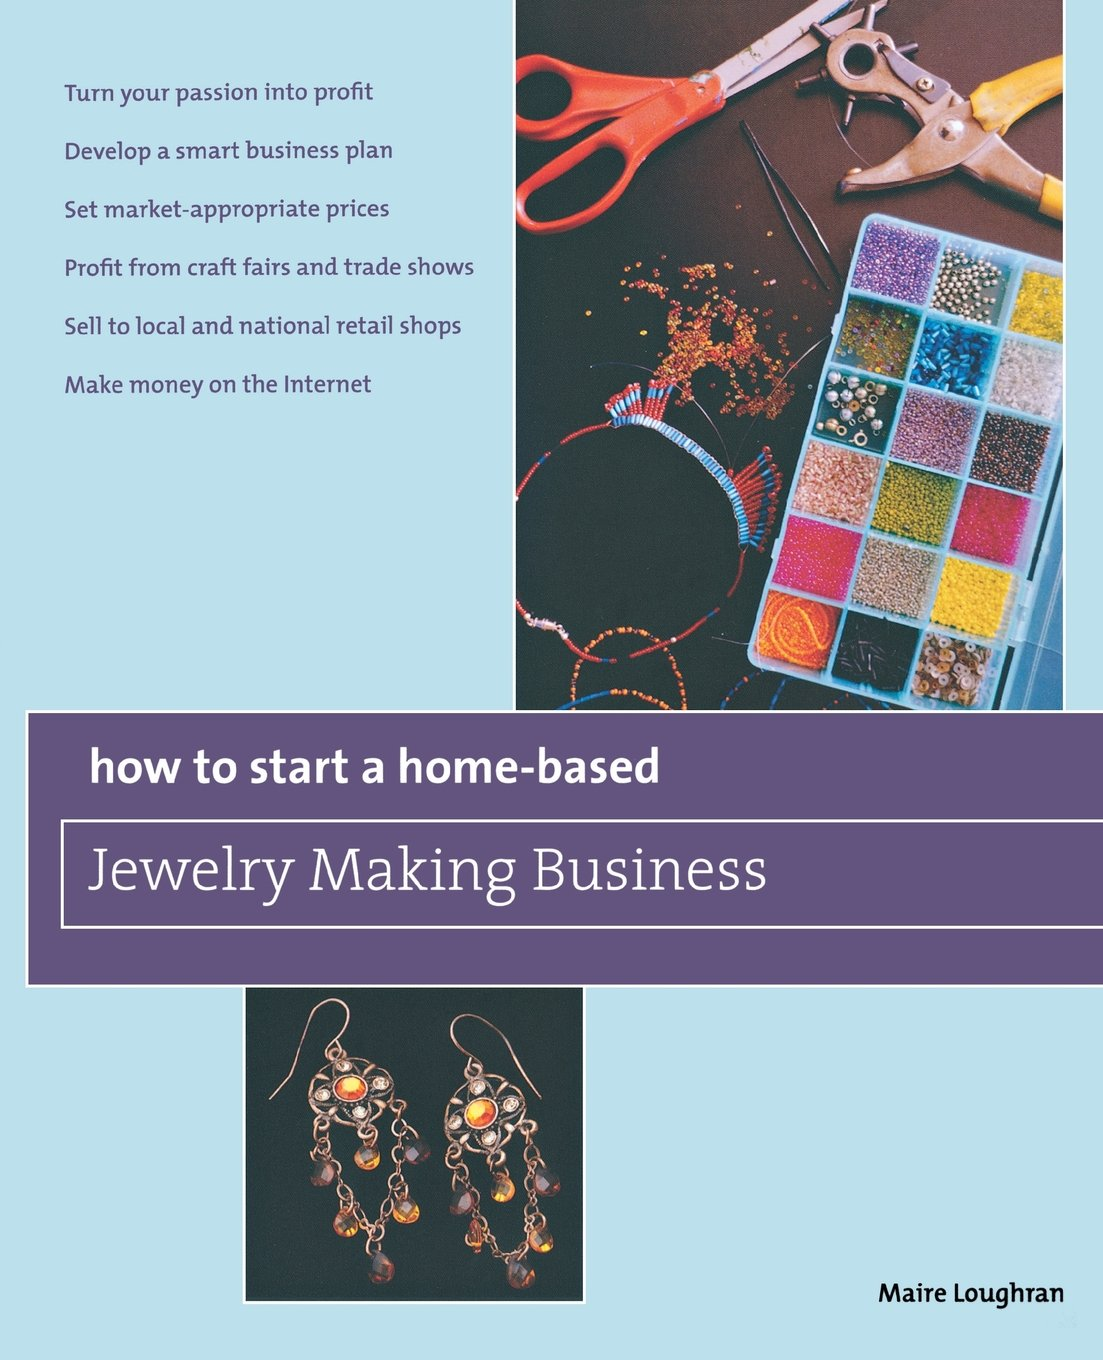 goals and objectives of a jewelry business